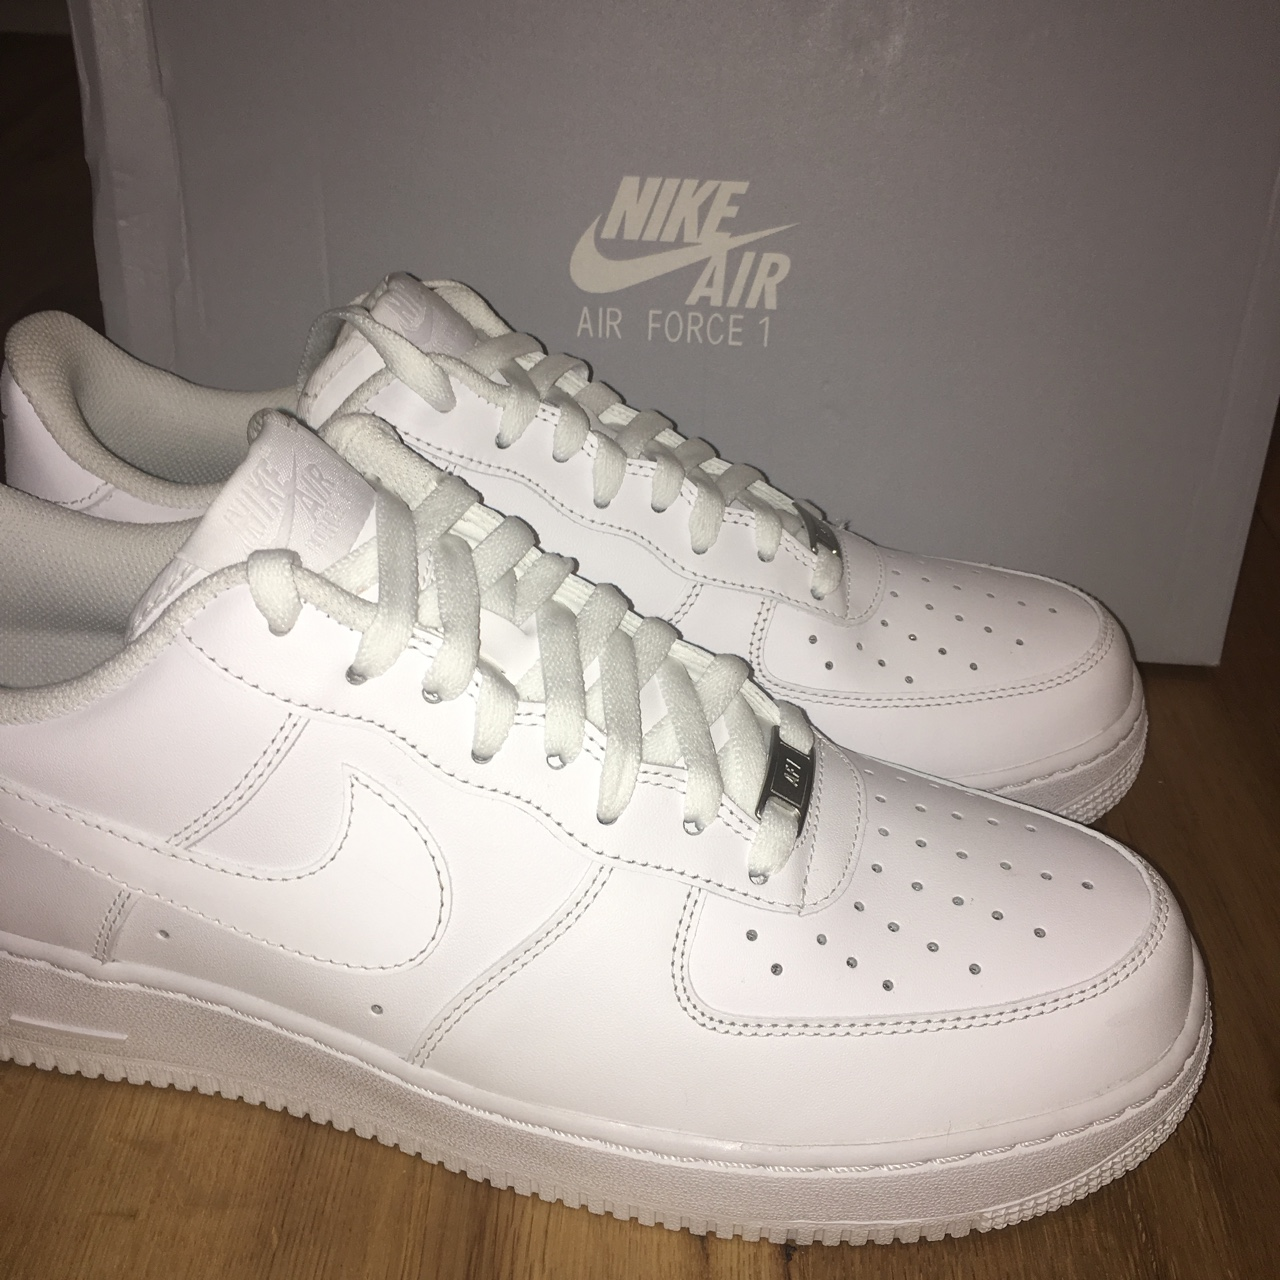 SOLD ON EBAY* White Air Force 1 size 11